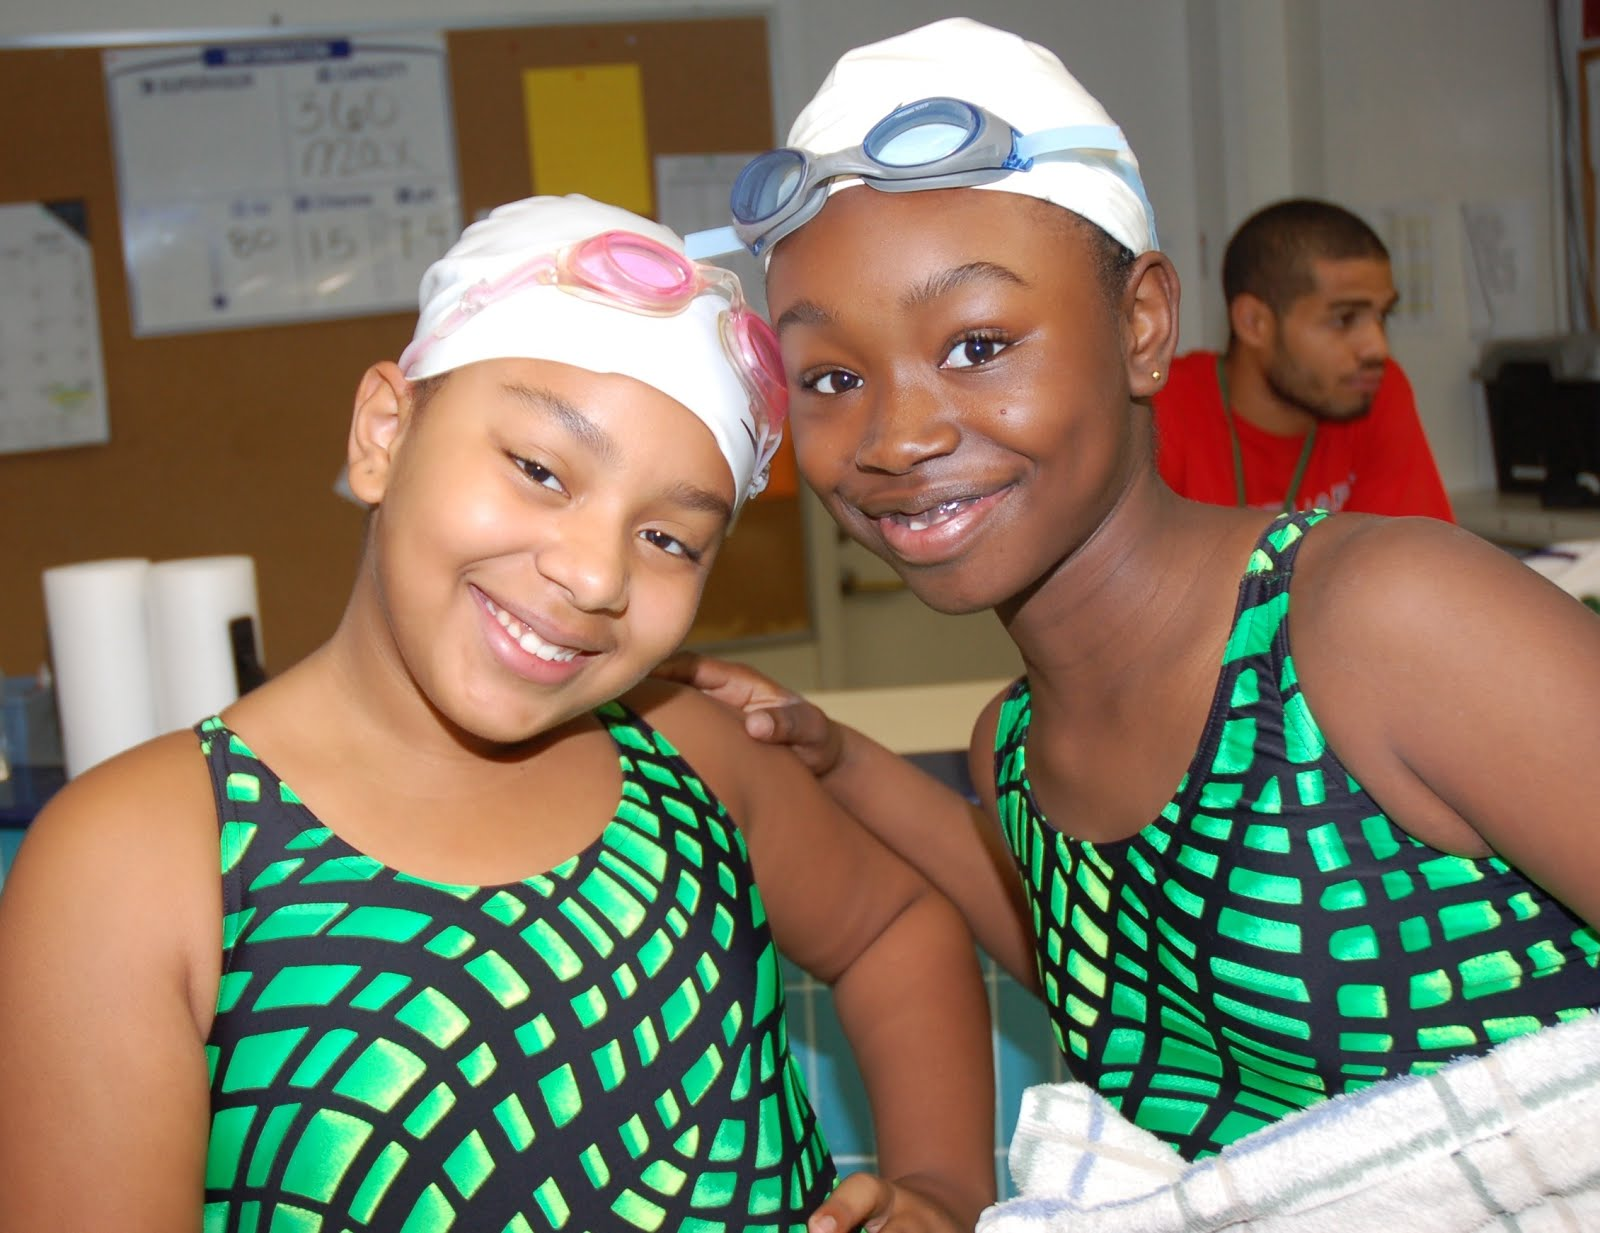 swim%2Bfree%2Bdolfin%2B2 Teens are now getting pregnant at a higher rates than before ...